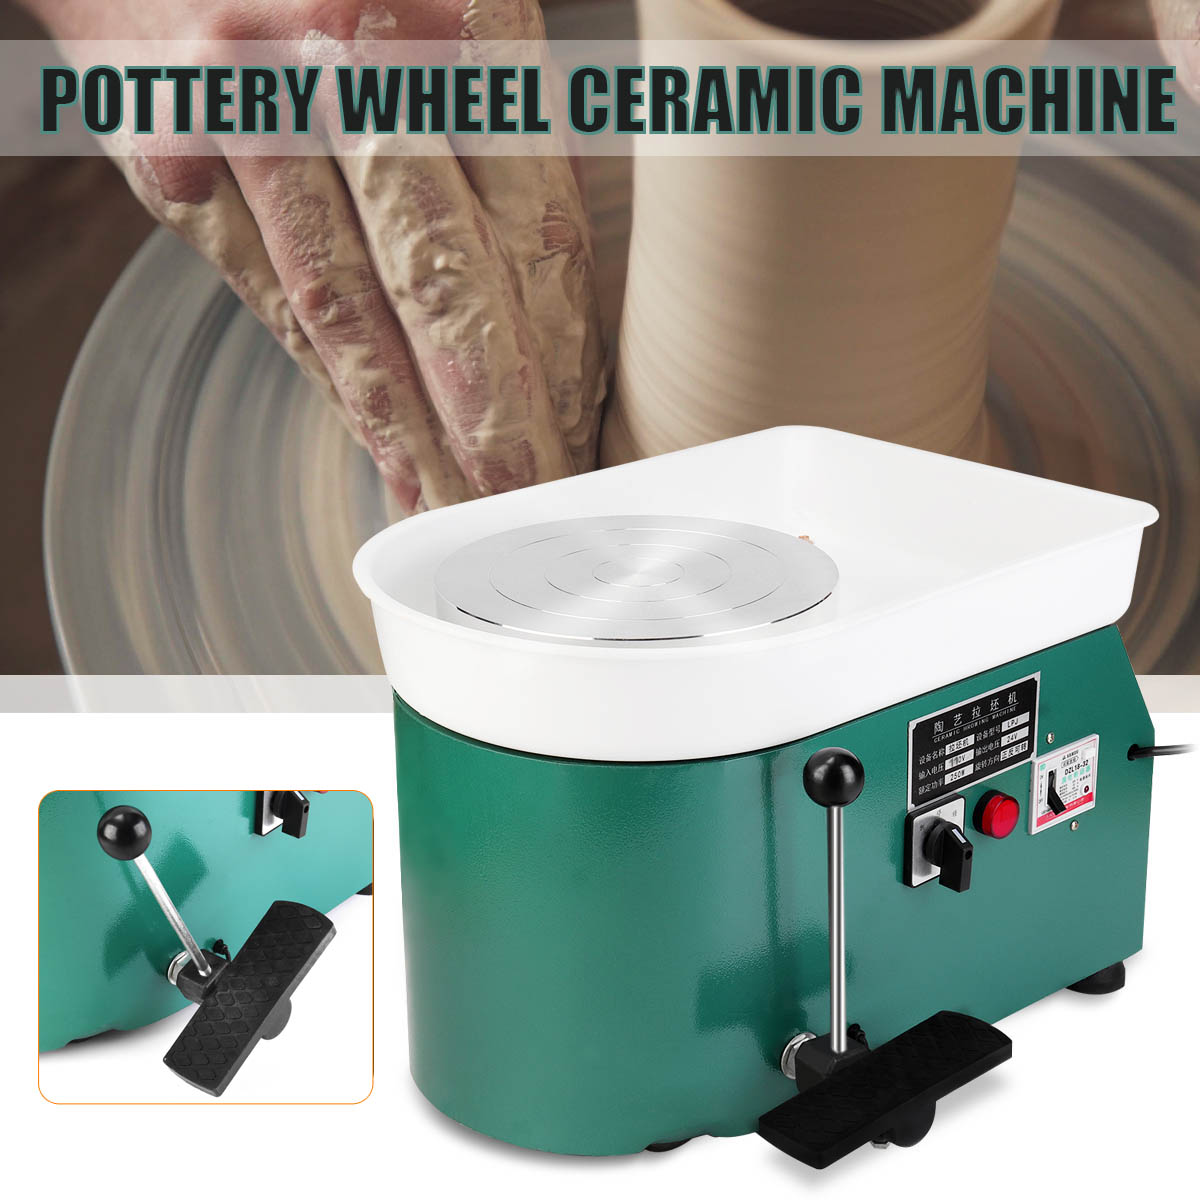 Ceramic Wheel Pottery Wheel Pottery Forming Machine 250W//350W Optional Electric Pottery Wheel DIY Clay Tool with Tray for Ceramic Work Ceramics Clay Art Craft 250W